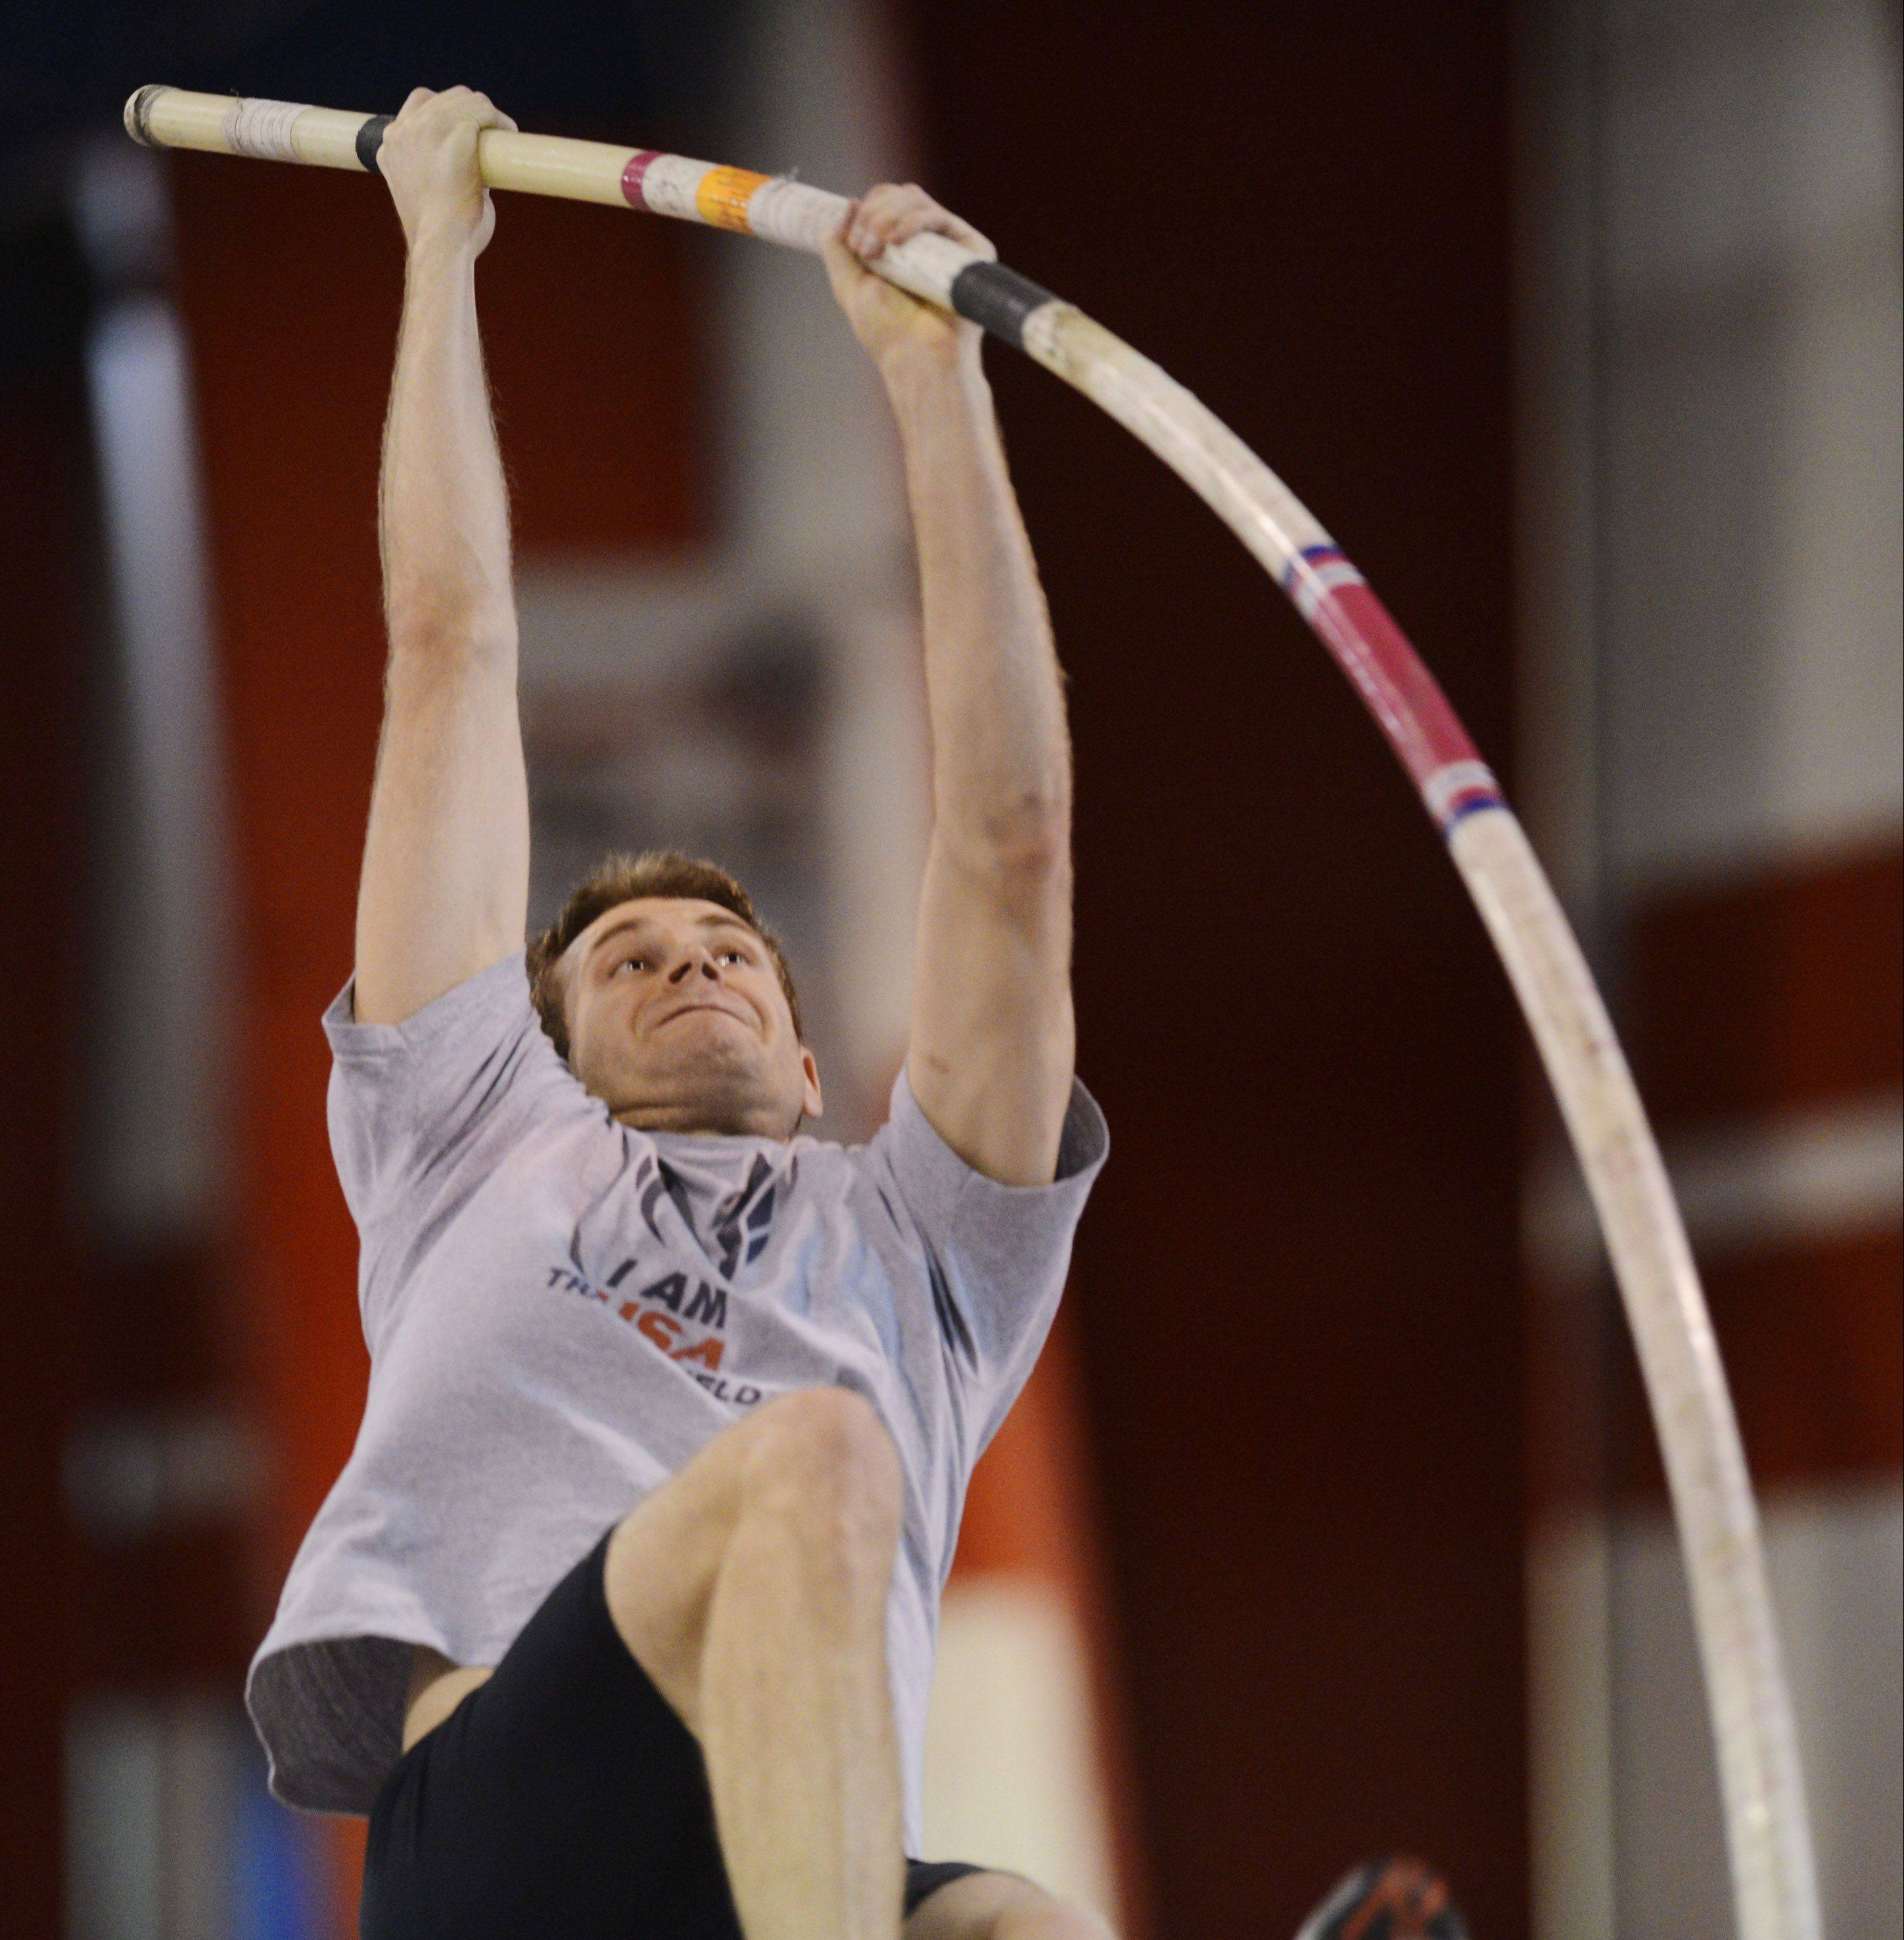 Moving Picture: Local pole vaulter has Olympic hopes